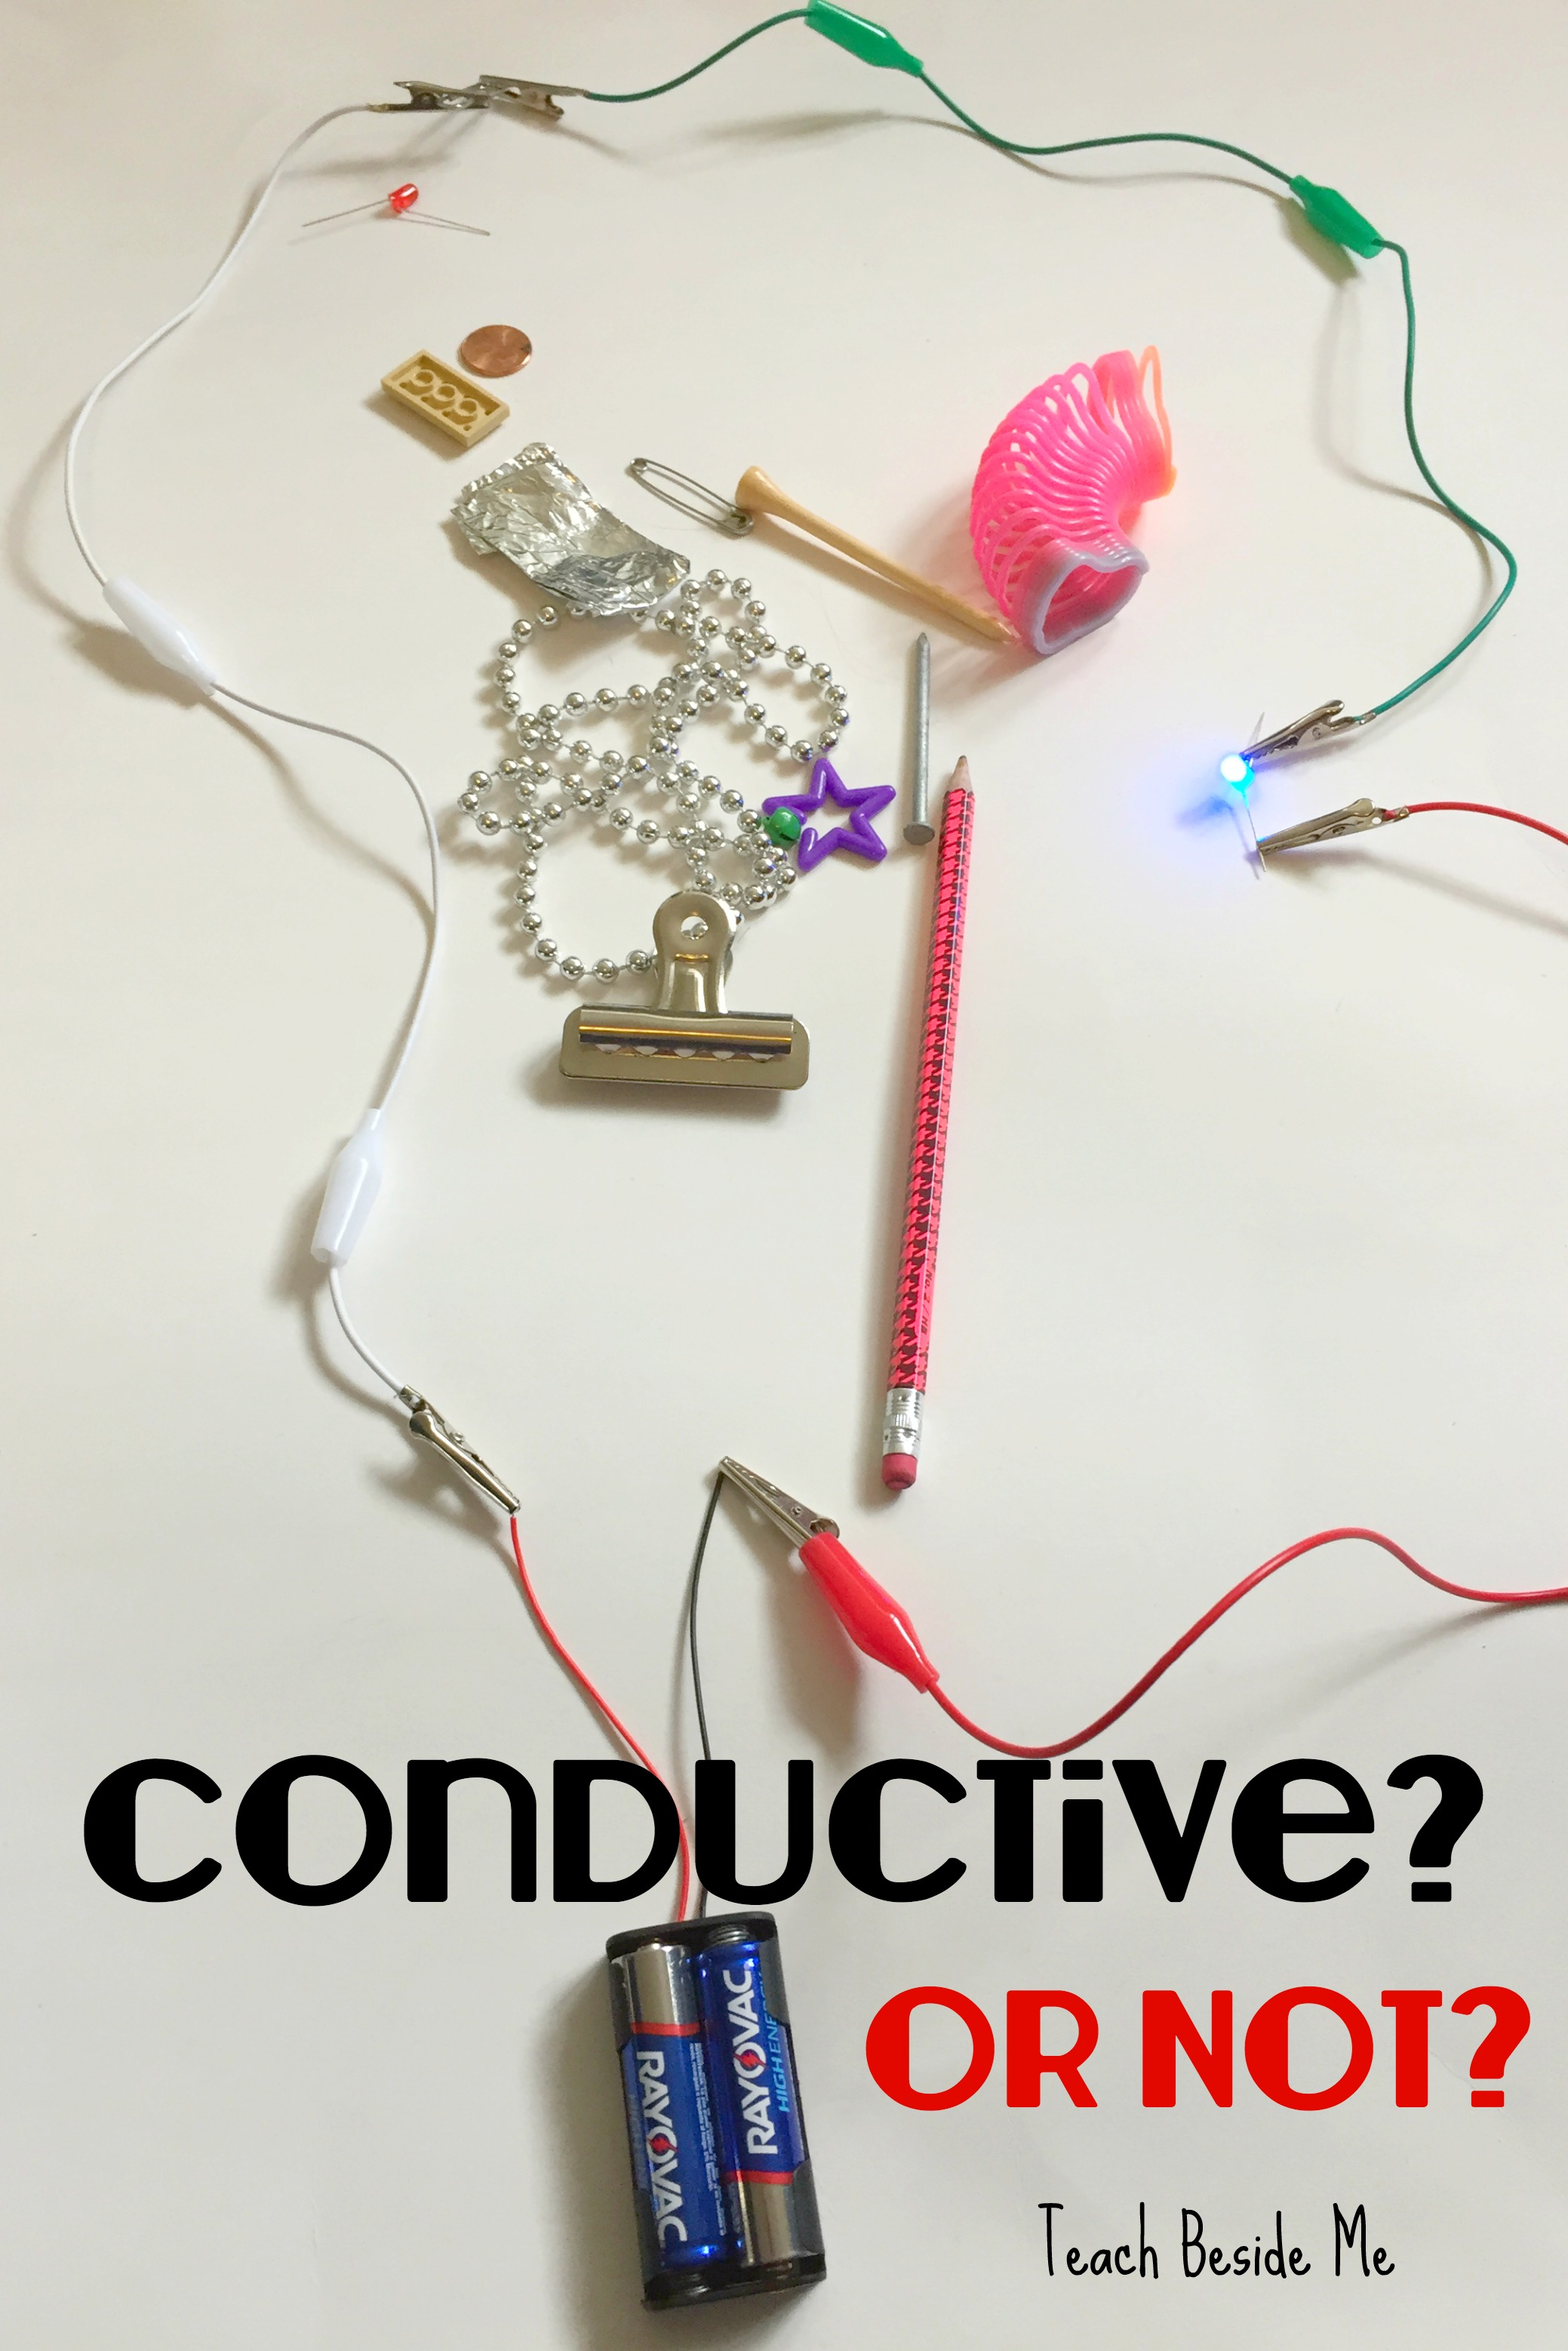 Is It Conductive or Not? STEM Conductivity Experiment